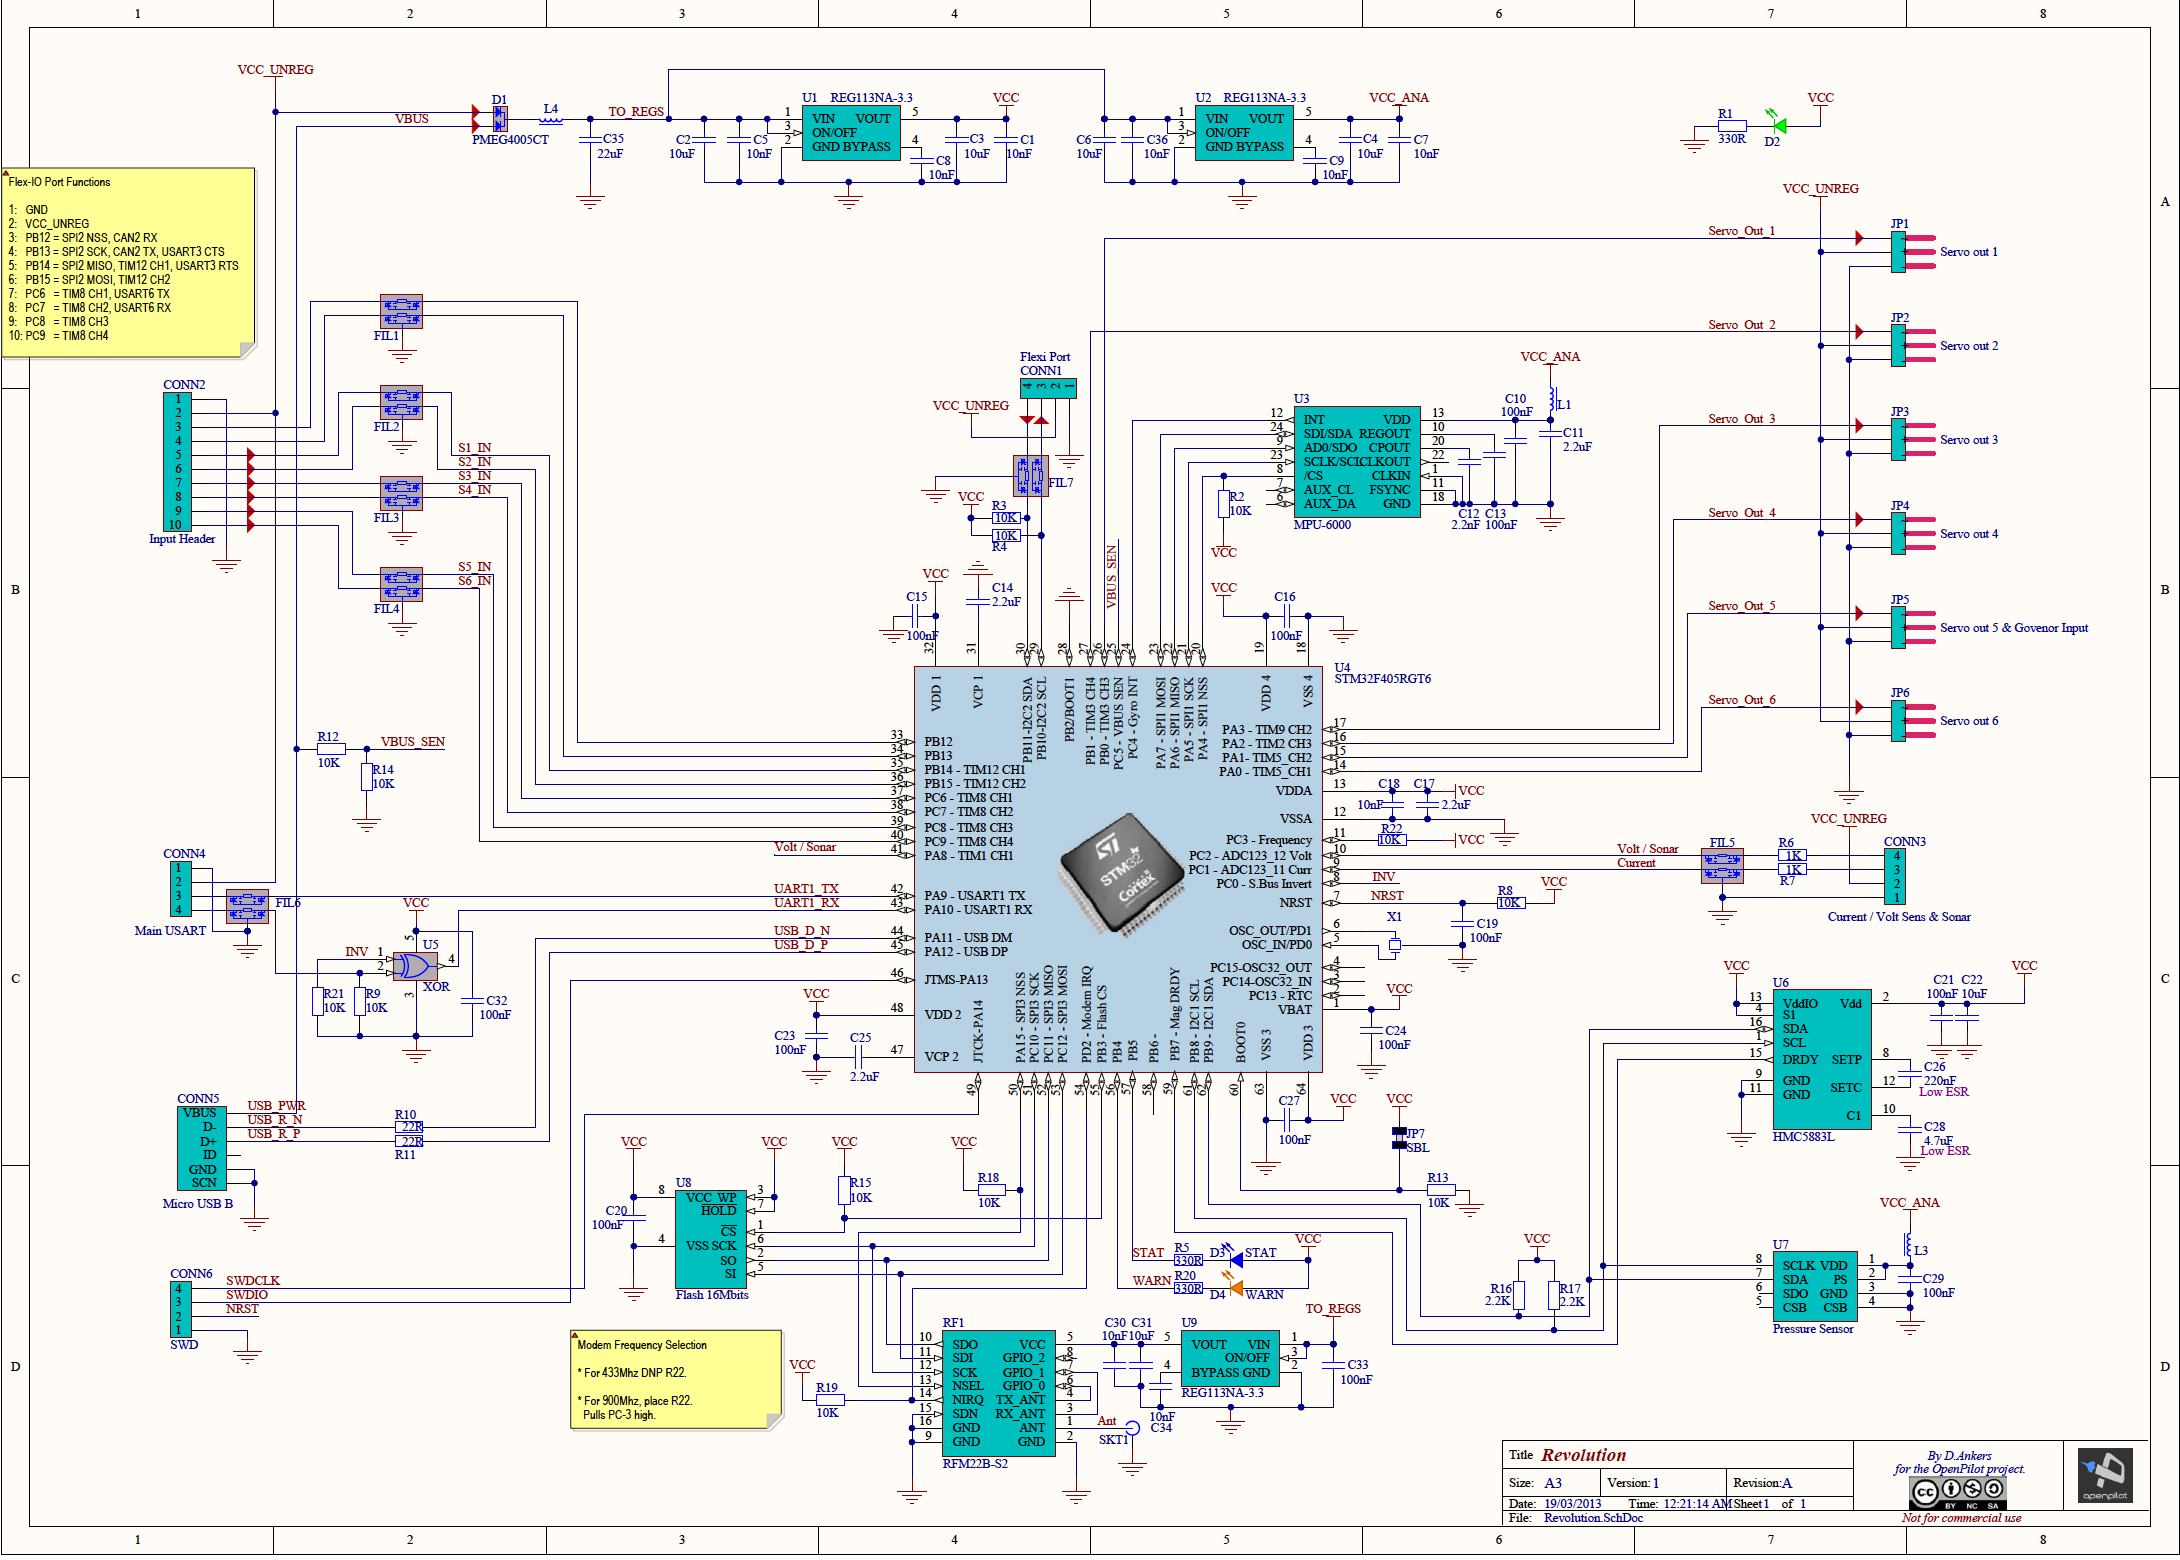 cc3d quad wiring diagram best wiring library Packet Switching Diagram cc3d atom wiring details simple wiring schema cc3d quad wiring diagram cc3d wiring diagrams